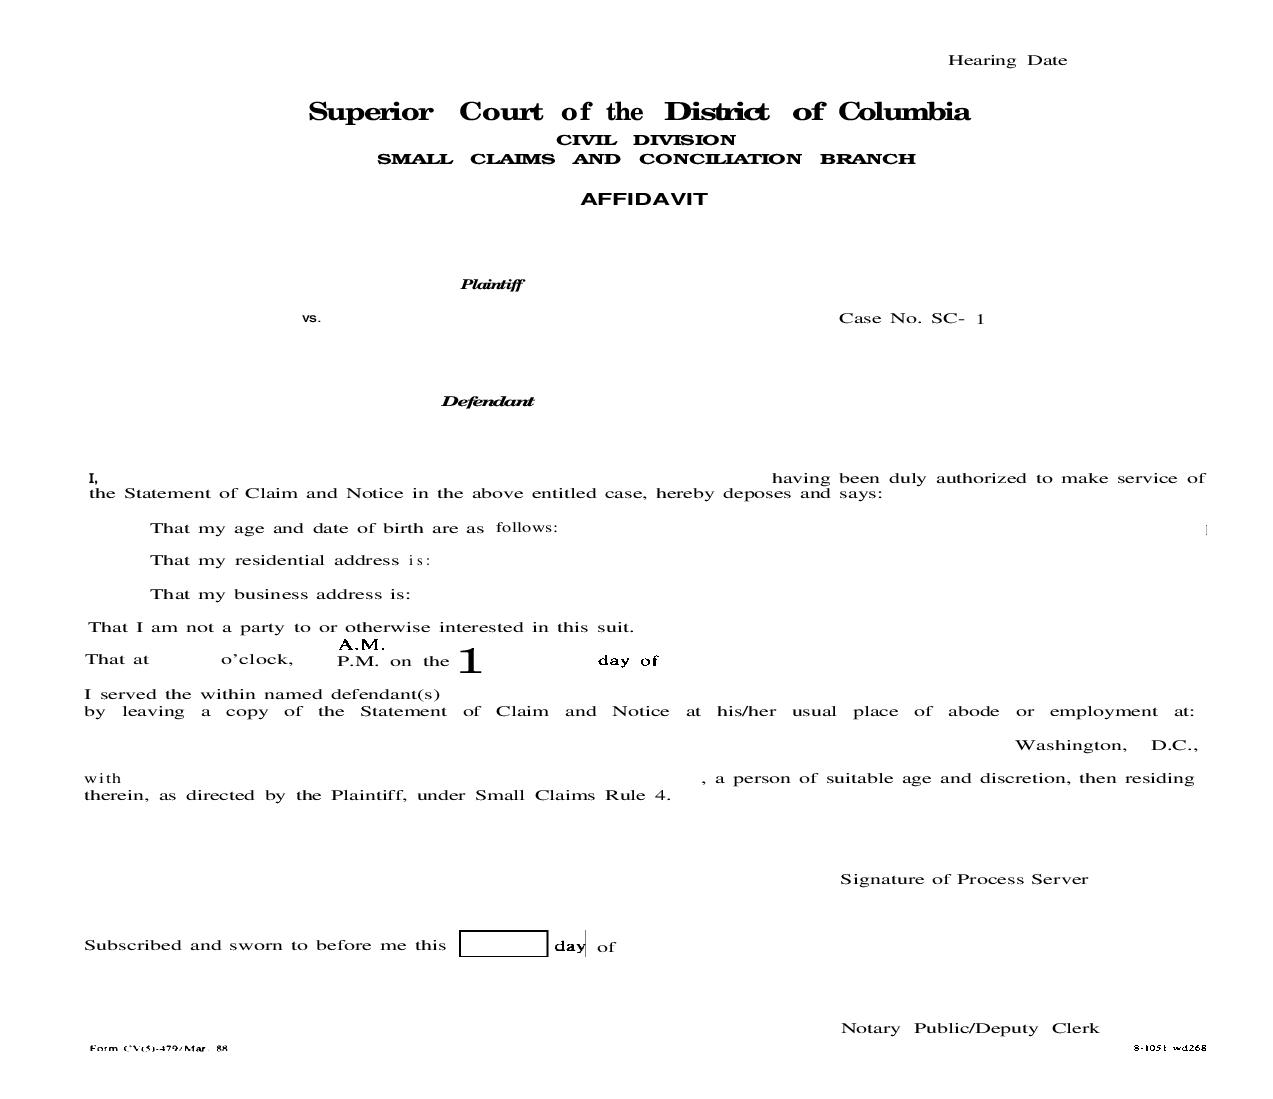 Affidavit (Of Service Of Statement Of Claim And Notice) {CV(5)-479}   Pdf Fpdf Doc Docx   District Of Columbia